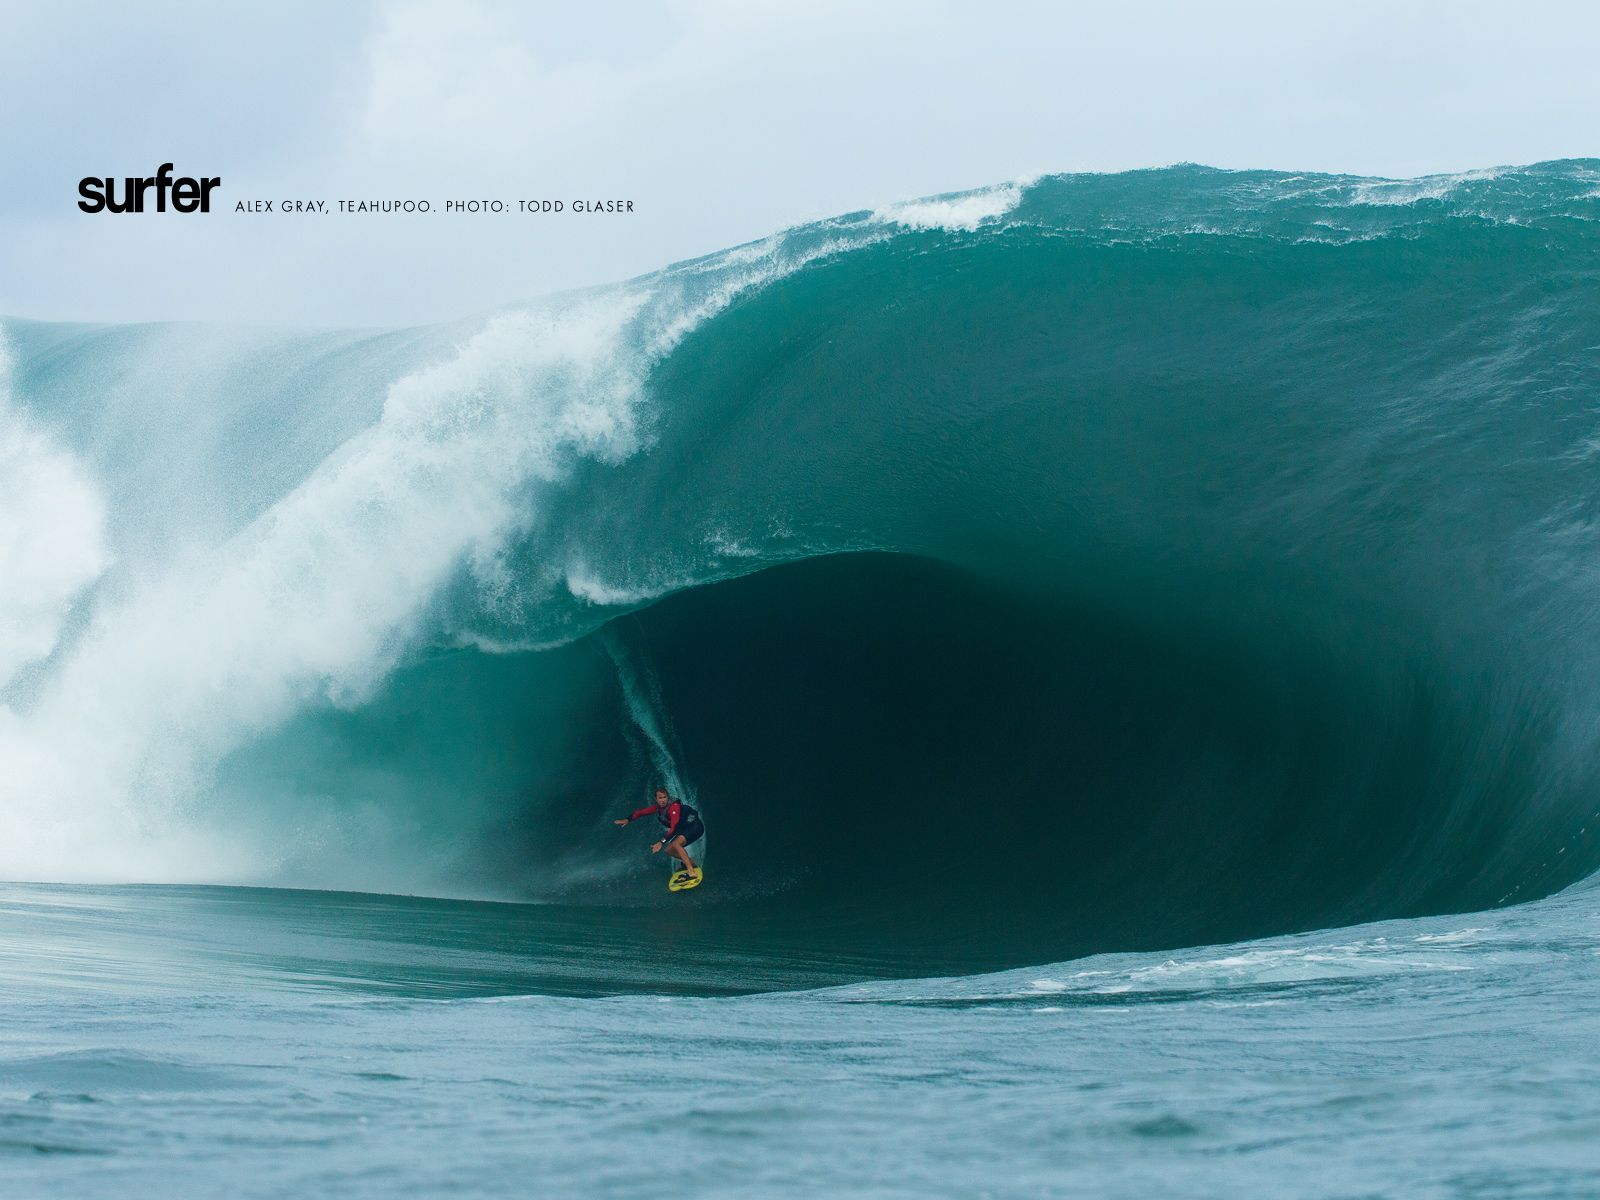 Surfer Magazine Surf News Fantasy Surfer Photos Video And Forecasting Surfing Big Wave Surfing Surfing Waves